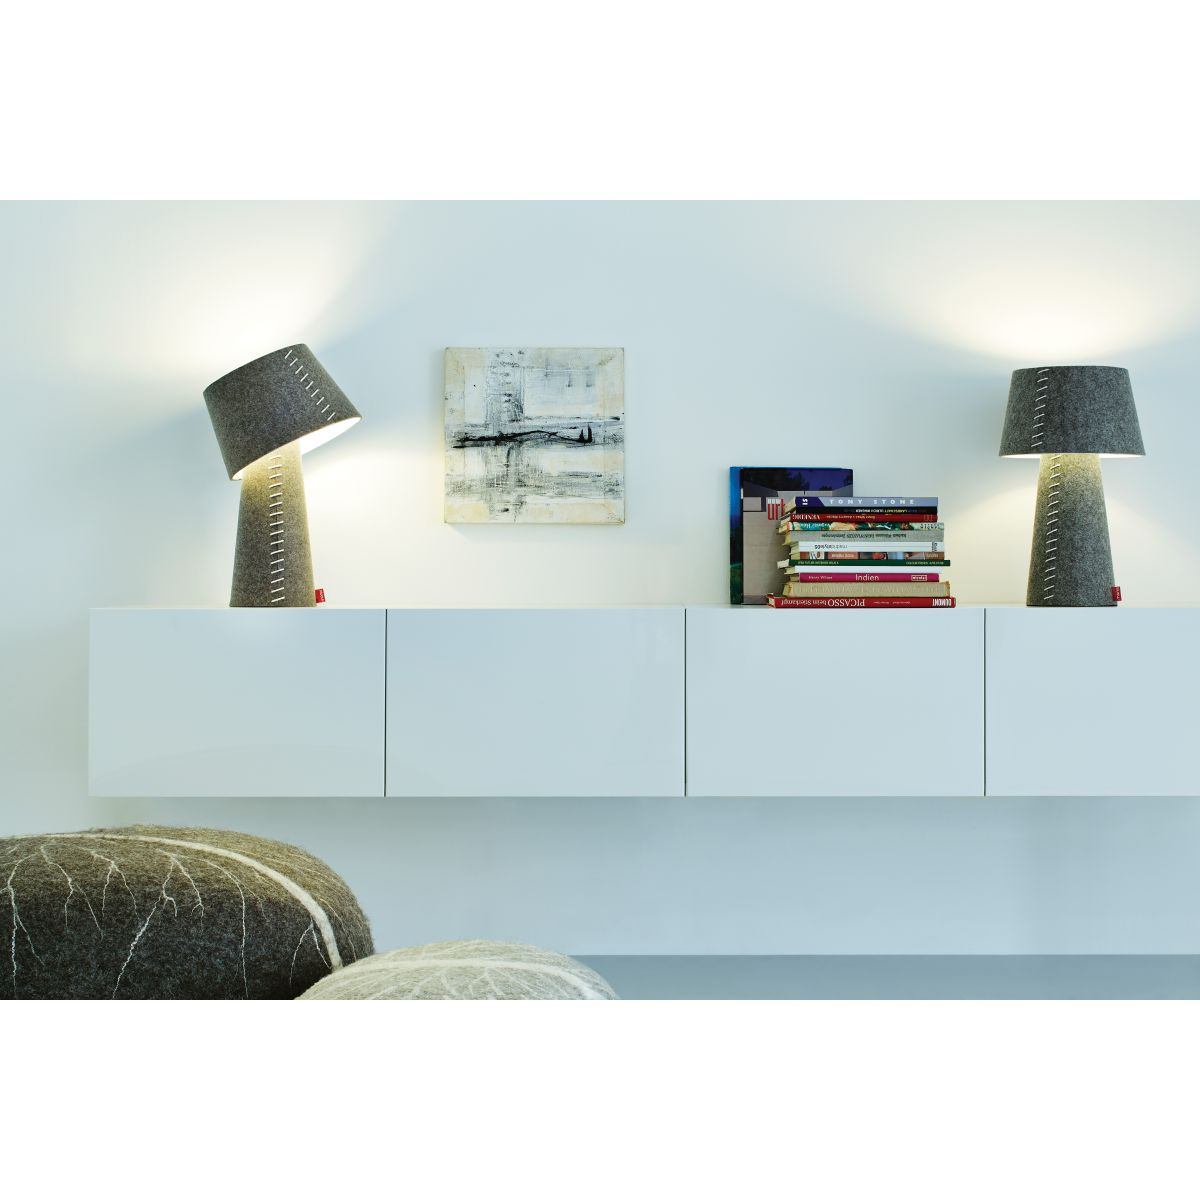 lampe de chevet moderne moree zendart design. Black Bedroom Furniture Sets. Home Design Ideas